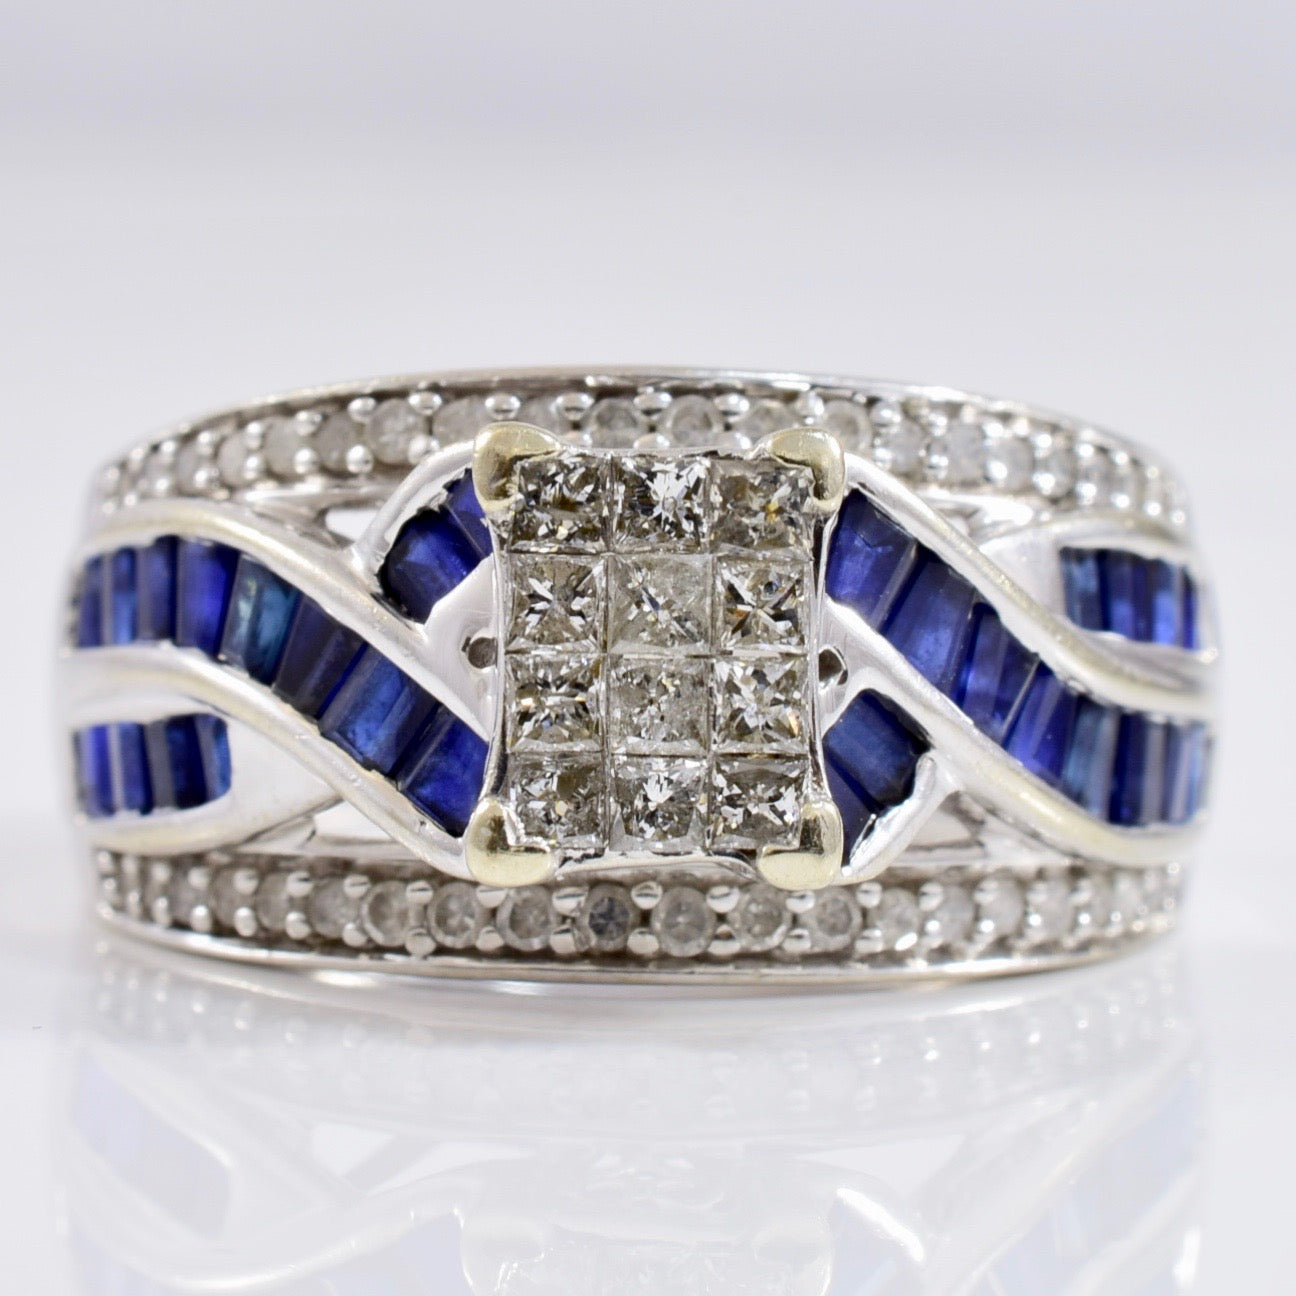 Diamond Cluster Ring with Sapphire Accents | 0.50 ctw SZ 6.75 |